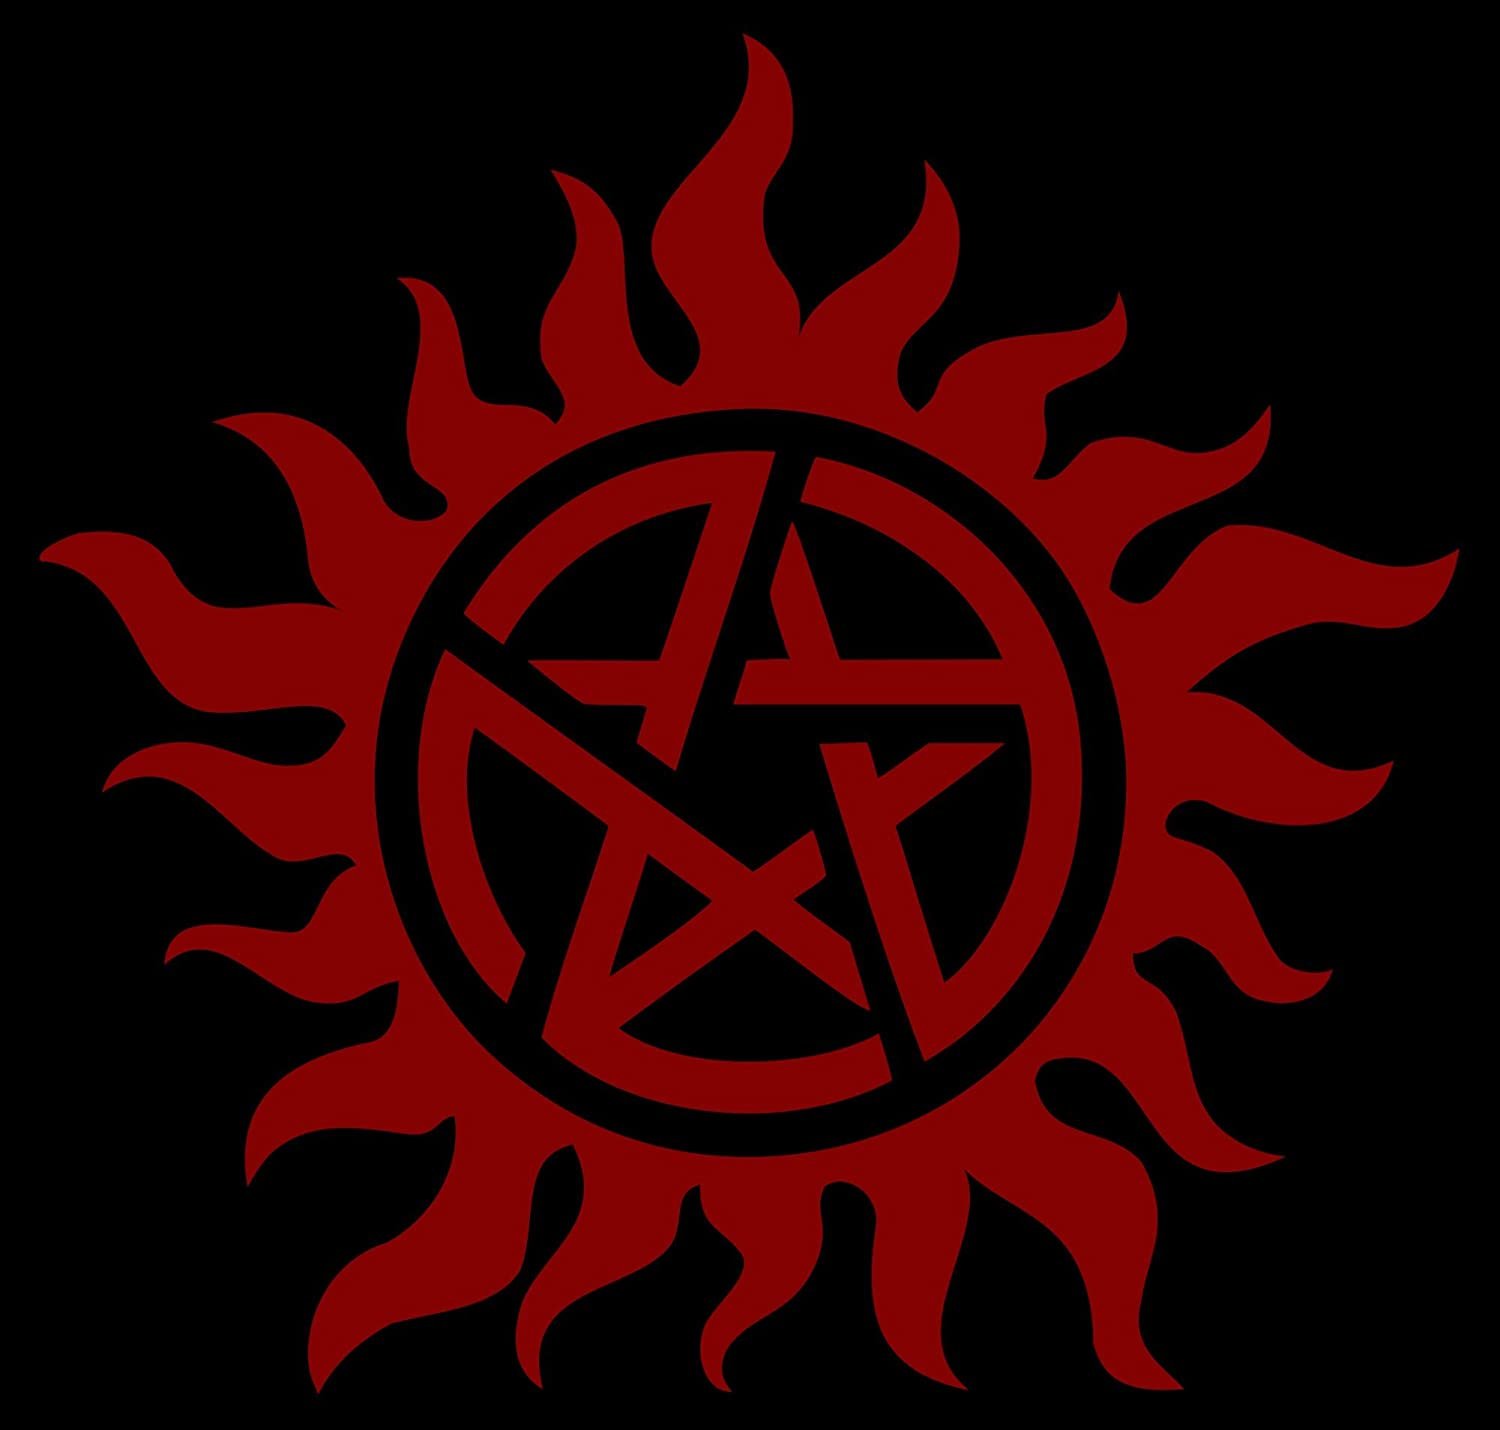 Art Stickers /& Decals Supernatural die cut Vinyl Decal sticker Approx Anti-Posession Symbol red 5 inches